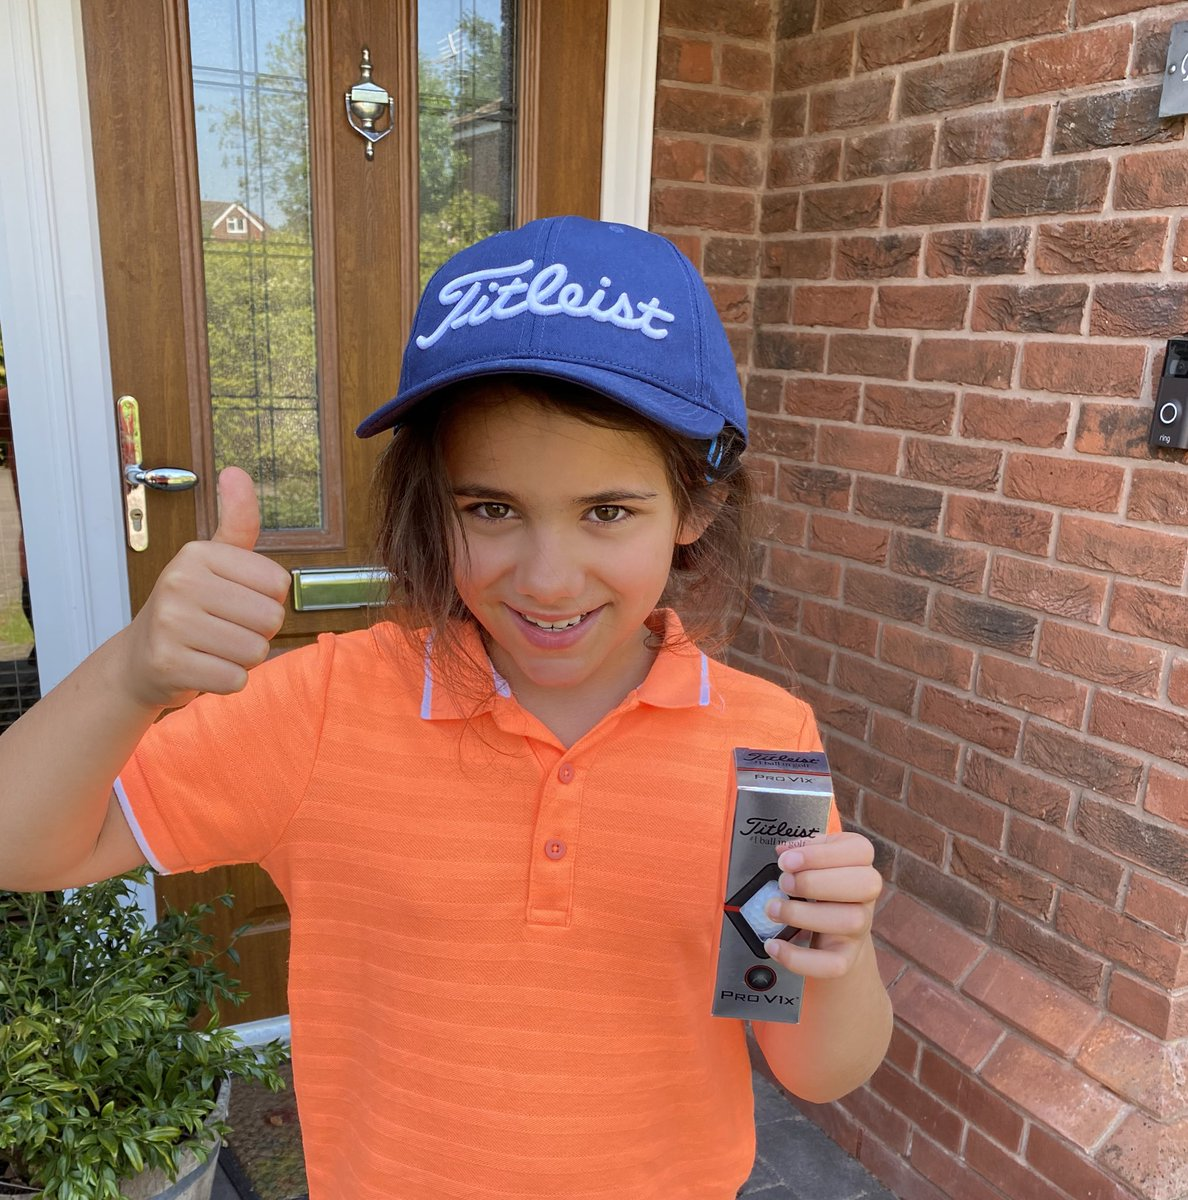 Many thanks to @PinkCarLeasing for the new Cap and sleeve of Pro V1, which arrived today. Well done to everyone who starred in the @robrockgolftour lockdown video which got 3rd place. Looking forward to seeing you all on Sunday from a distance!